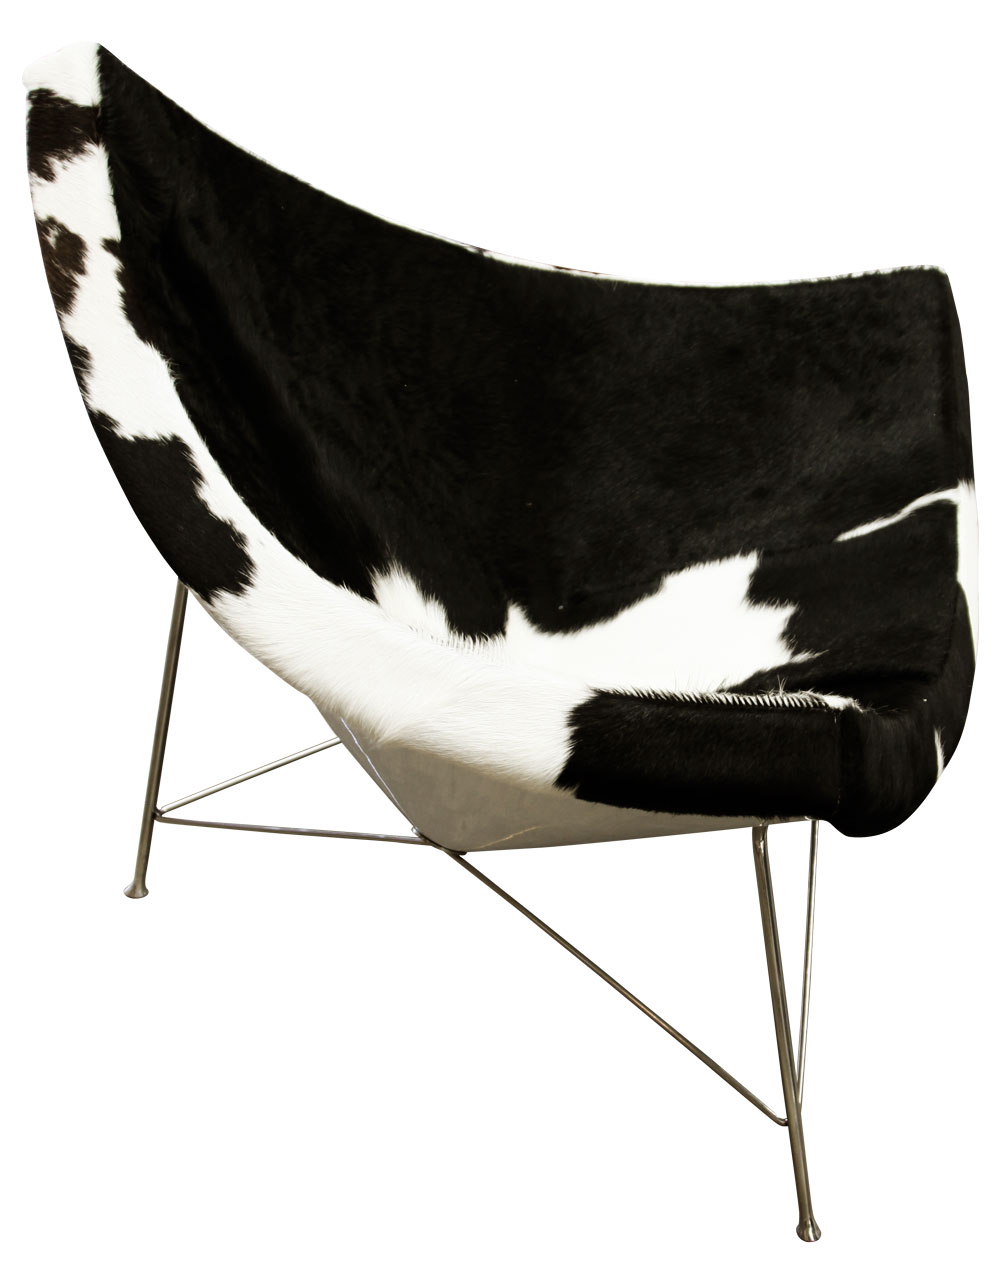 Classics Nelson Coconut chair in black and white cowhide